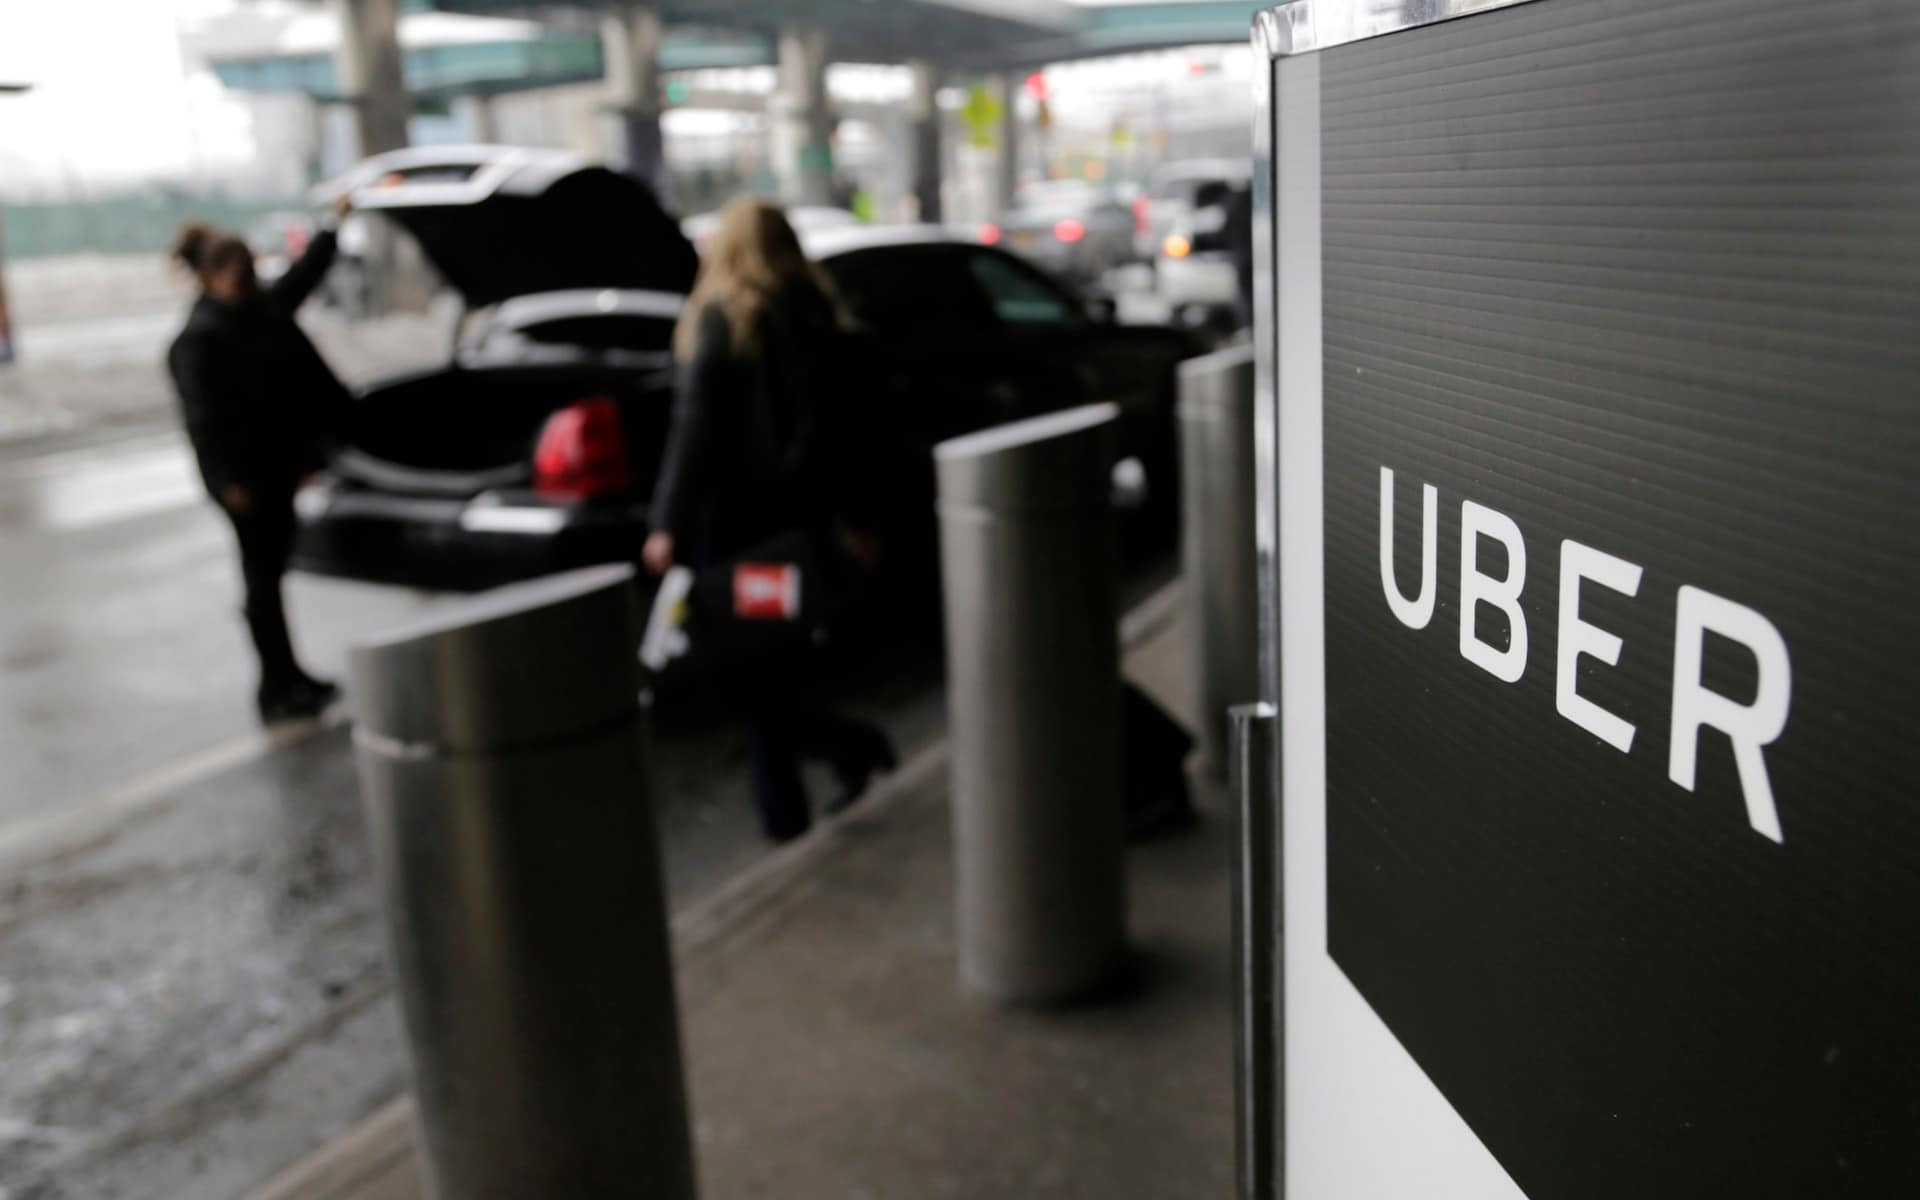 Uber concealed hack that affected 57 million customers and drivers